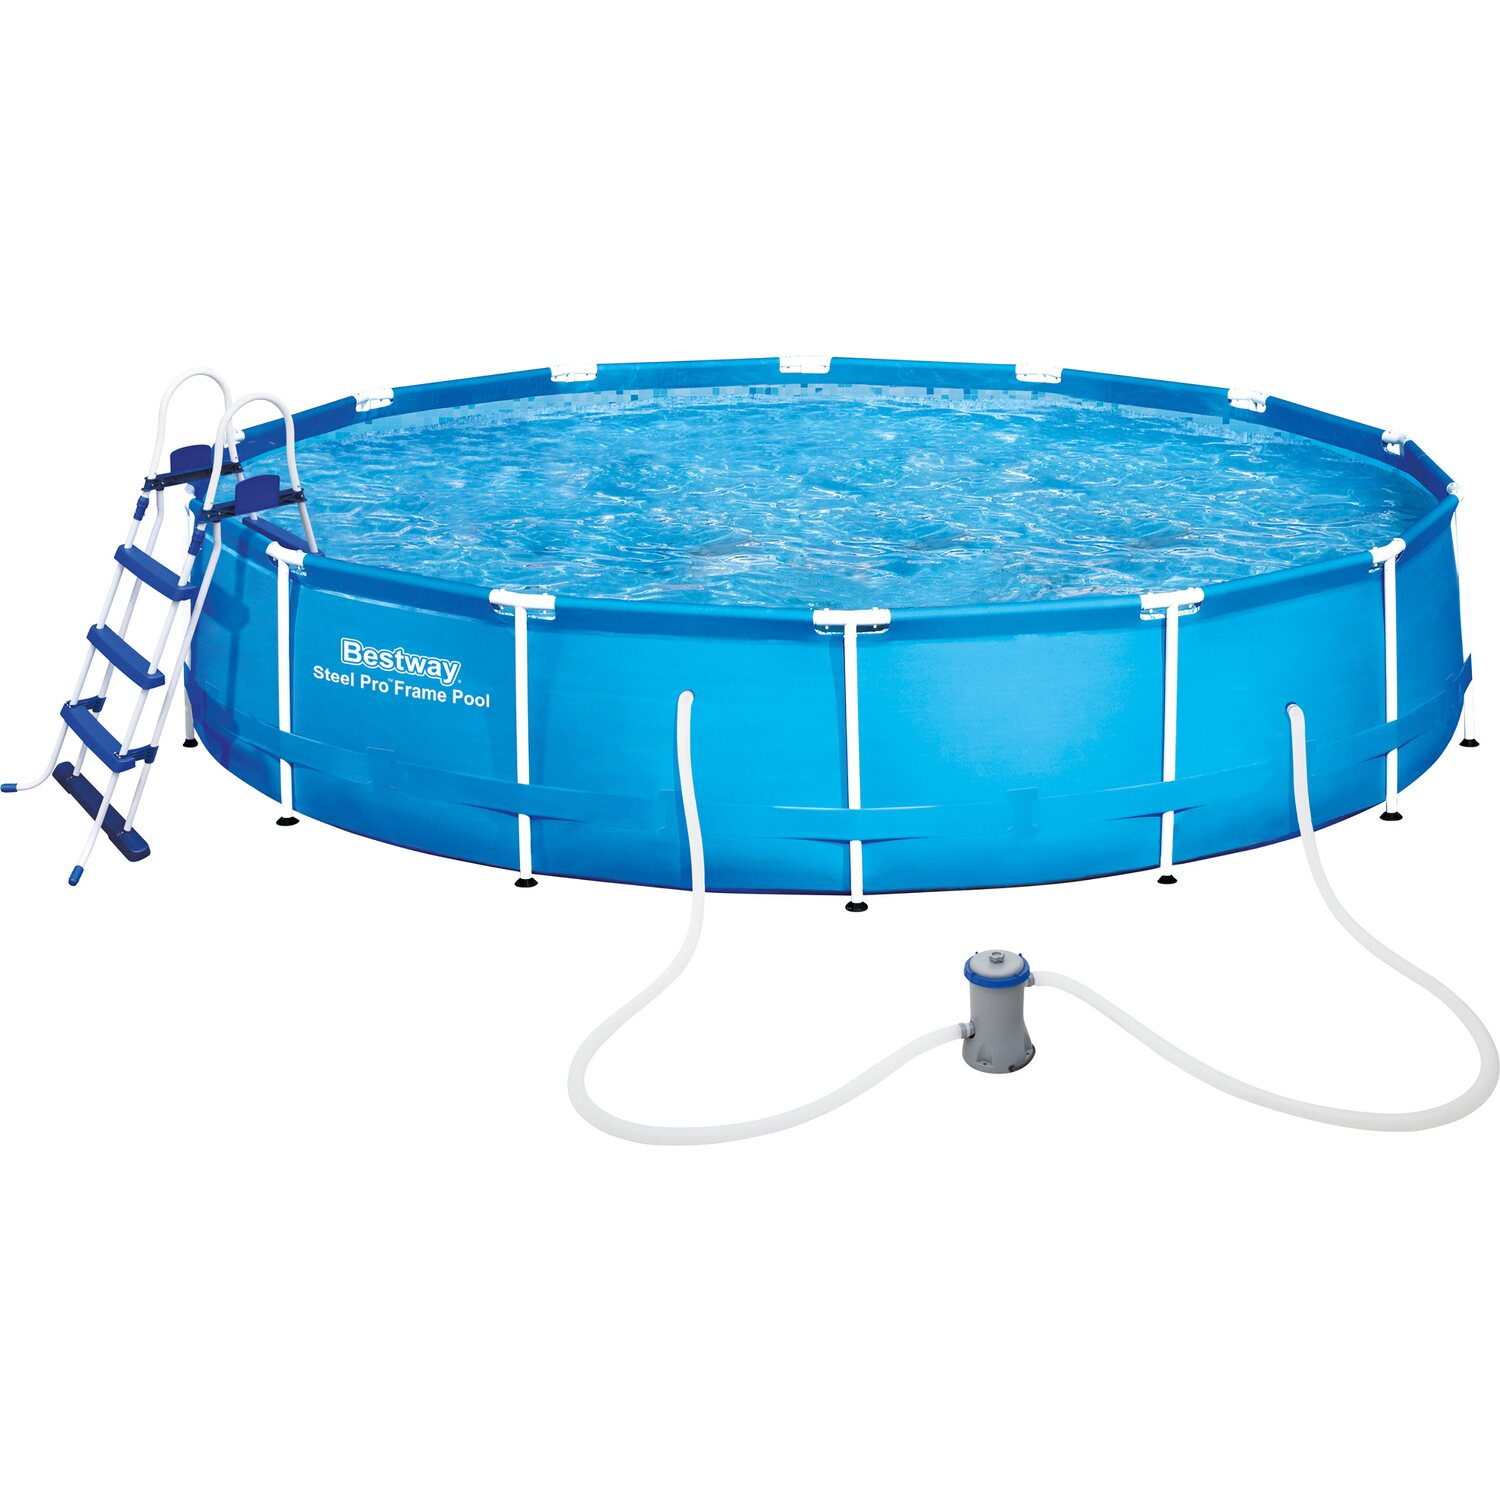 Bestway stahlrahmen swimming pool set 457 cm x 91 cm for Pool staubsauger obi